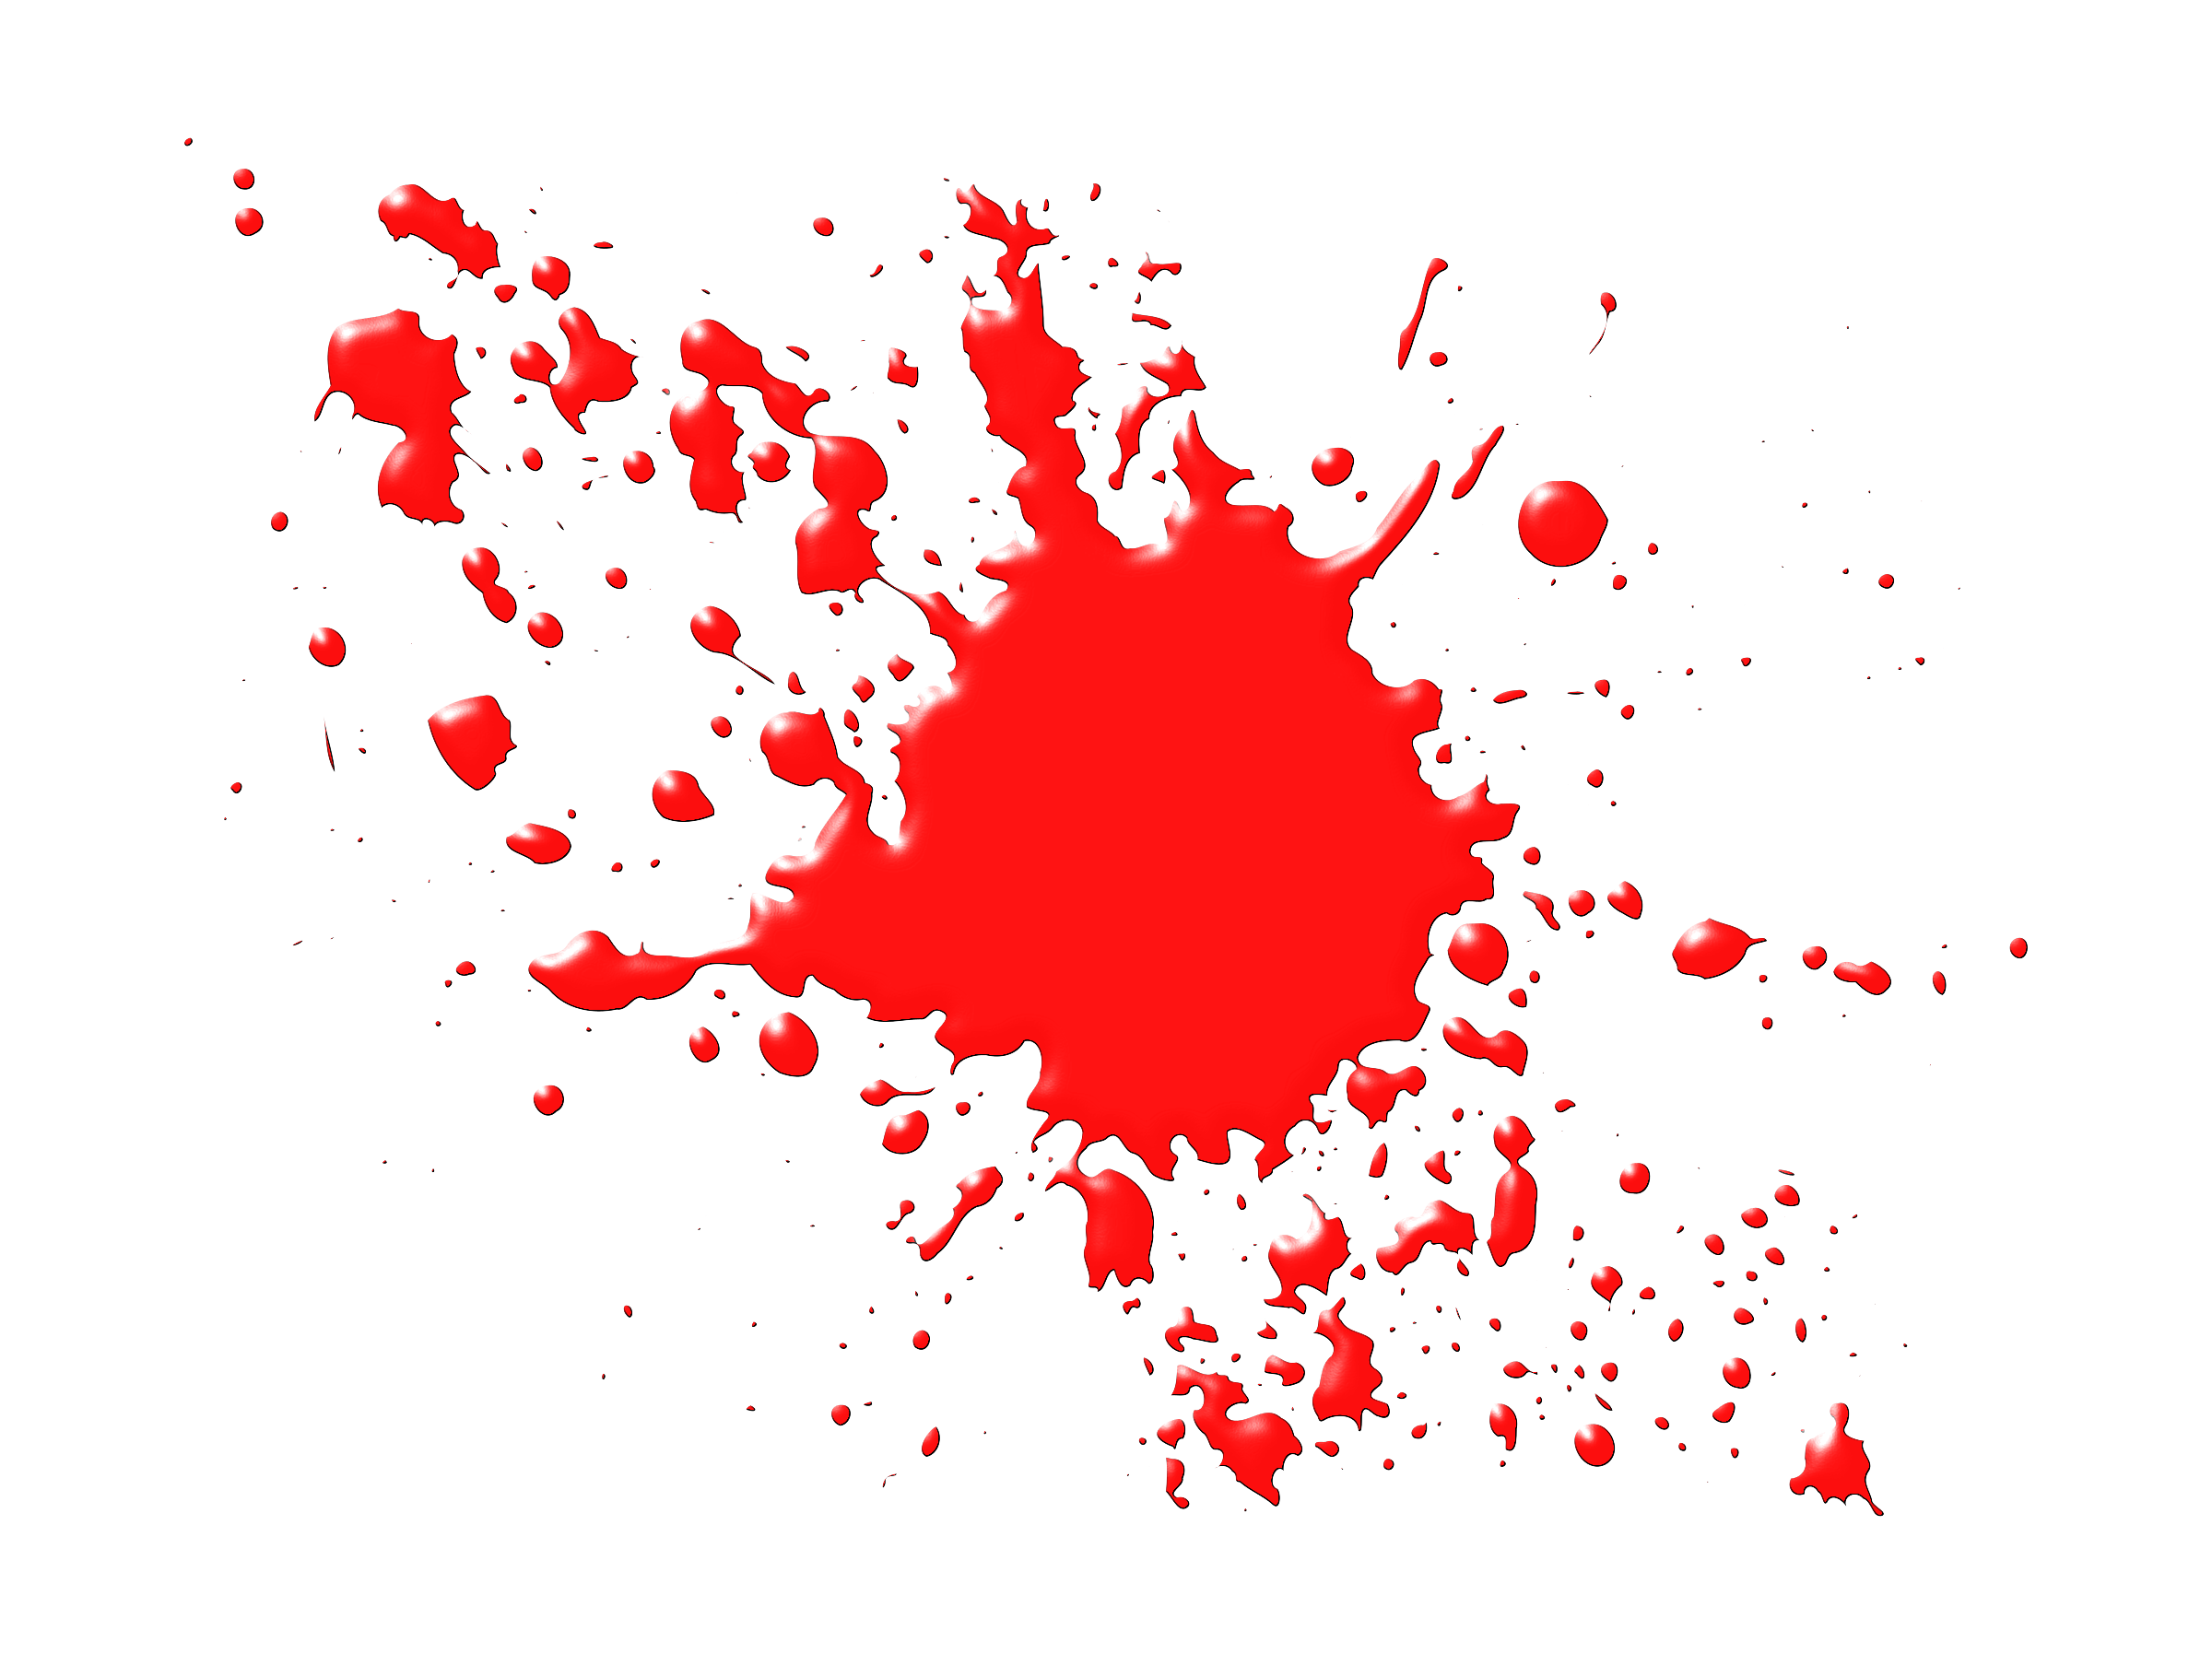 Blood Splatter Images